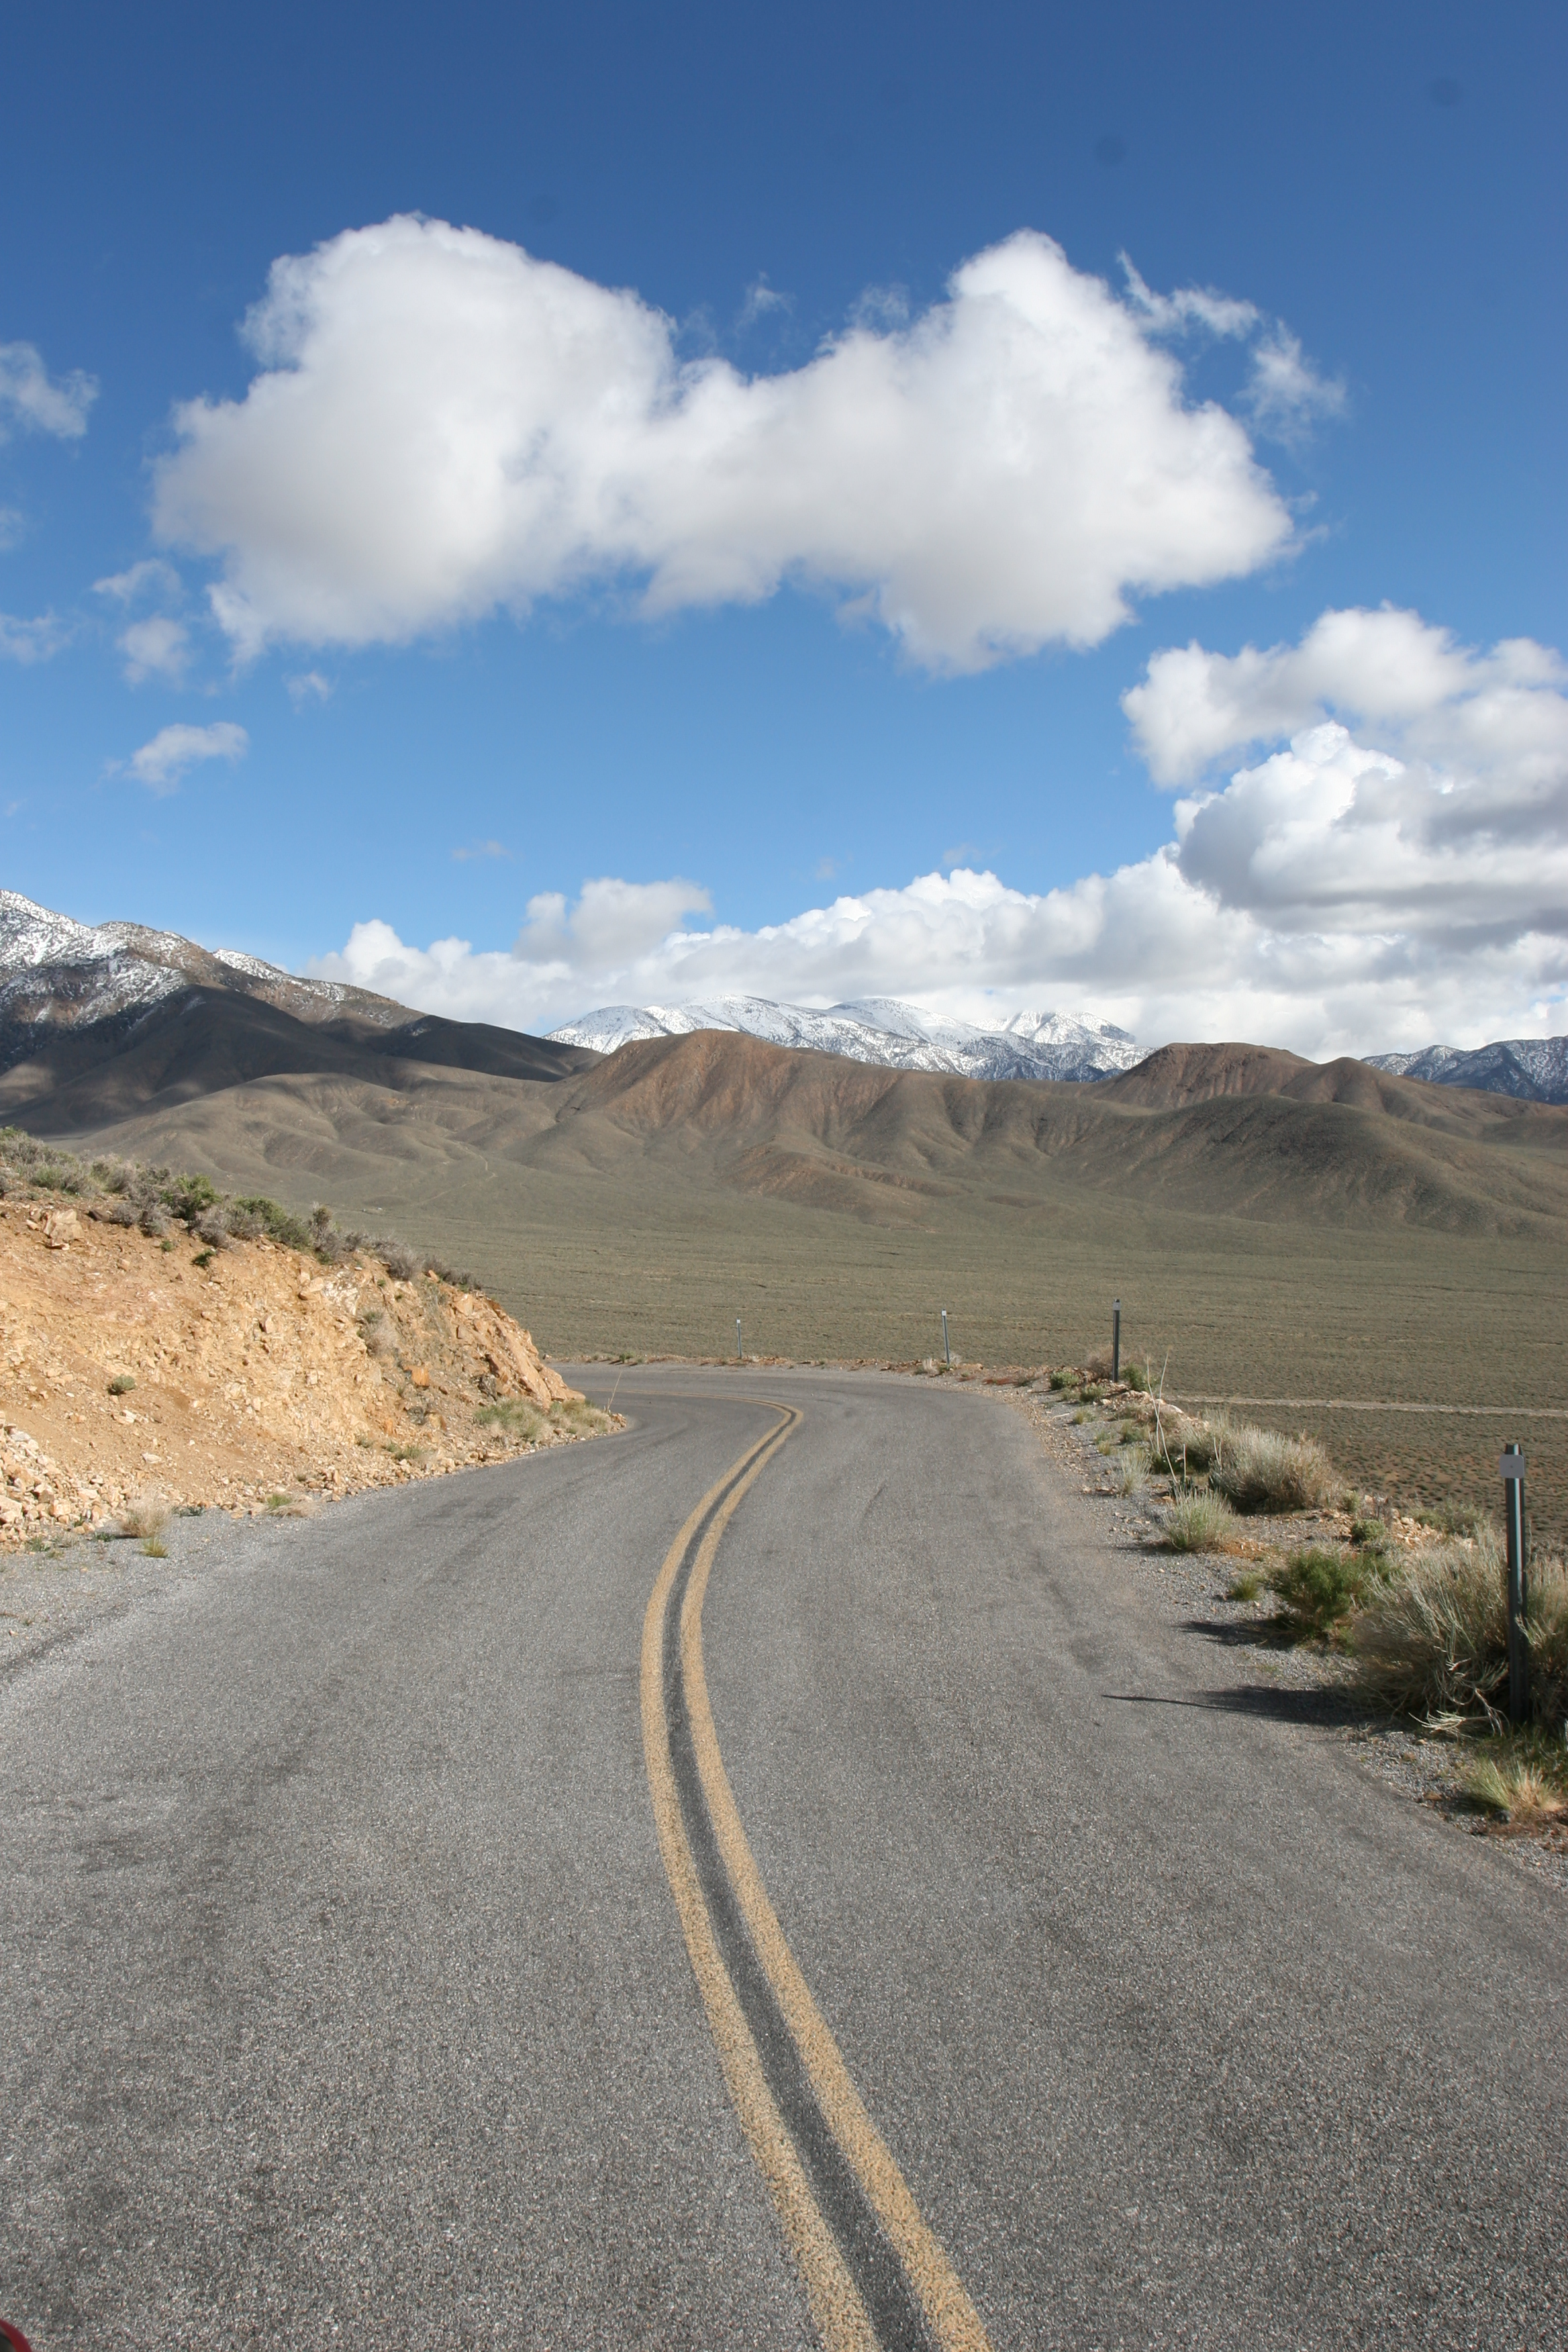 The views from Emigrant and Wildrose Canyon Roads are worth the time to explore when in Death Valley.